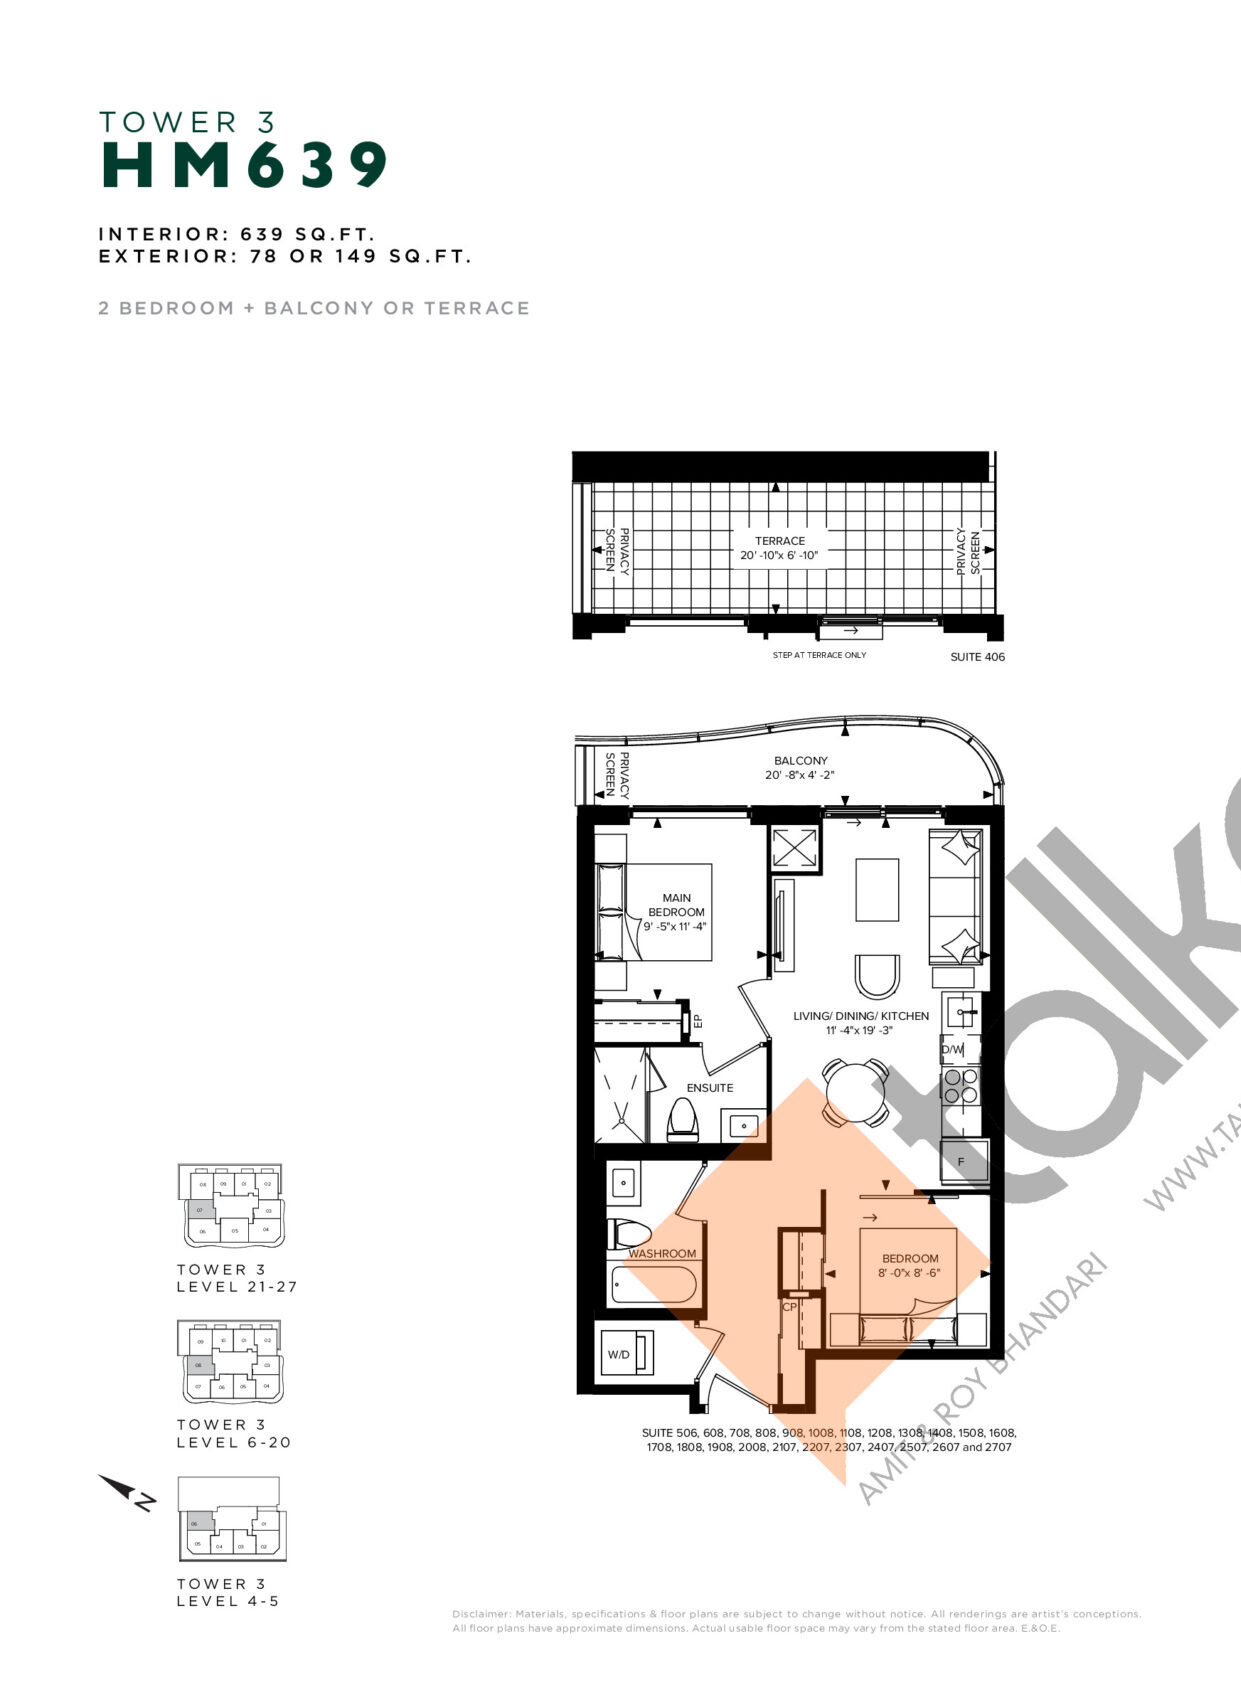 HM 639 (Tower 3) Floor Plan at Hillmont at SXSW Condos - 639 sq.ft